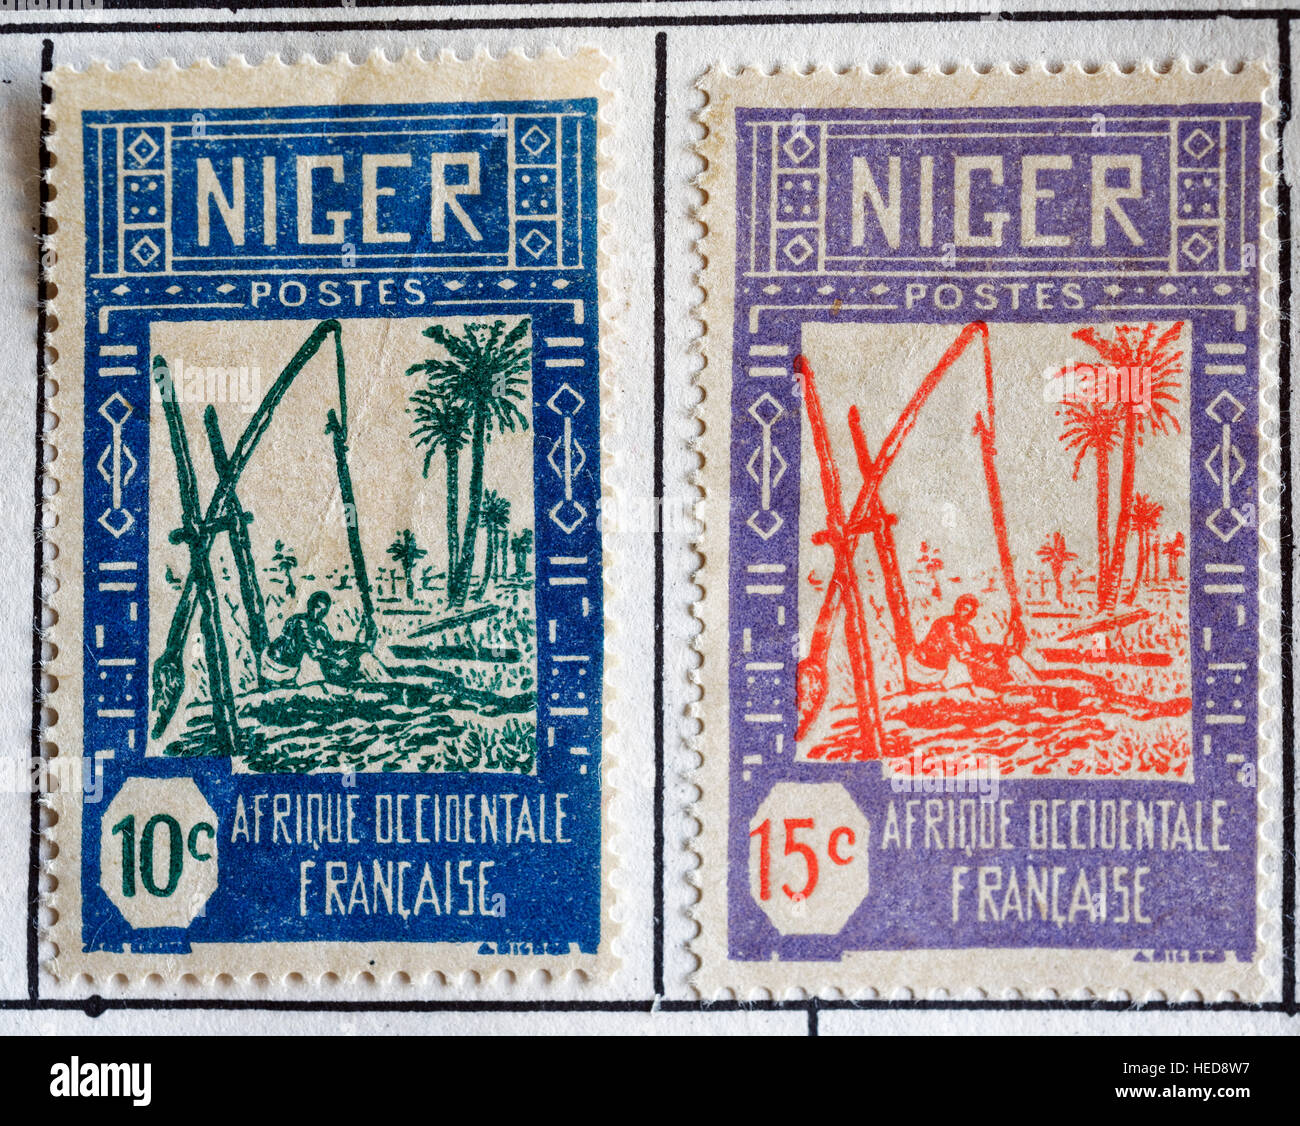 French colonial Africa postage stamps from Niger - Stock Image